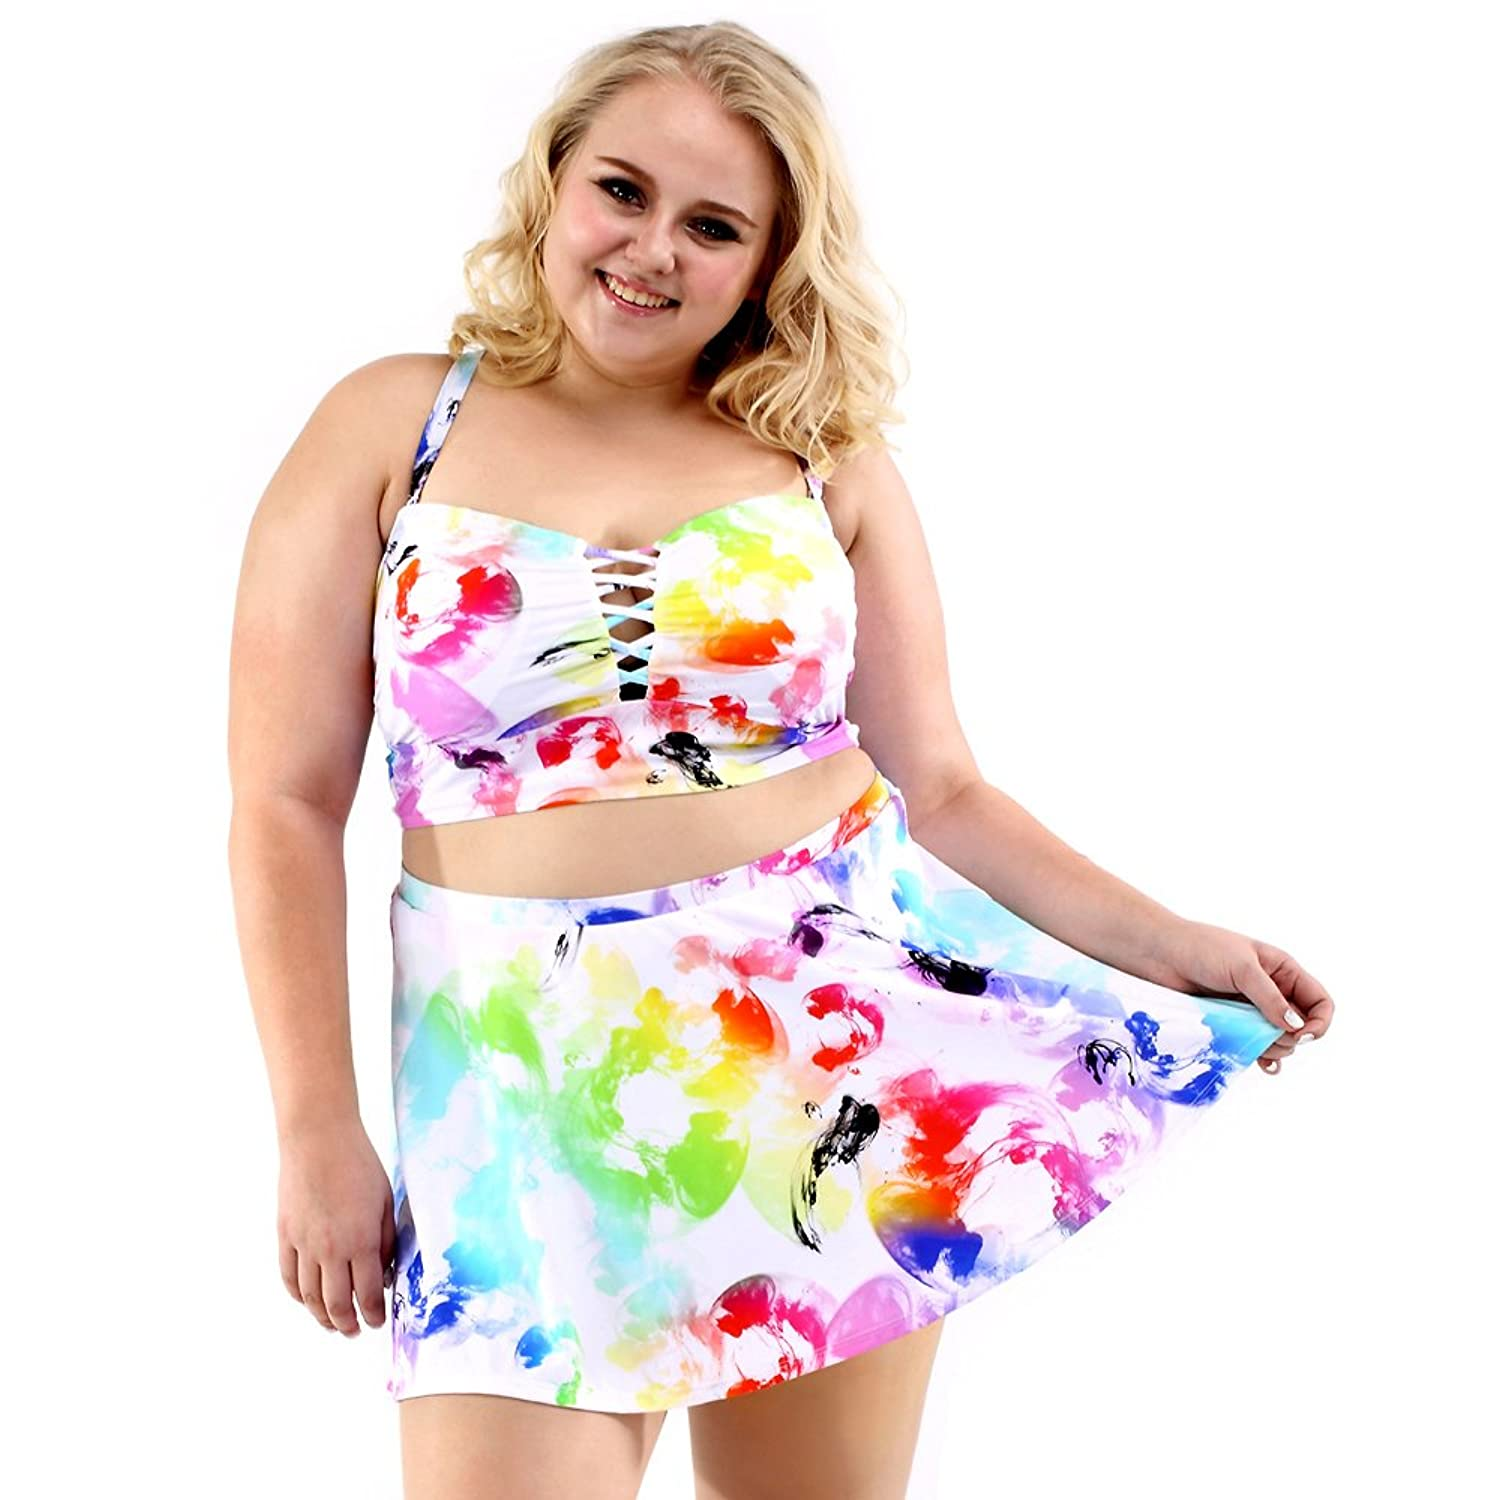 4f11e6074e539 Two-piece lace up deep-V top, high waist flounce shirted swimsuit and 2018  summer coloring style you appealing to the eye whenever & wherever.